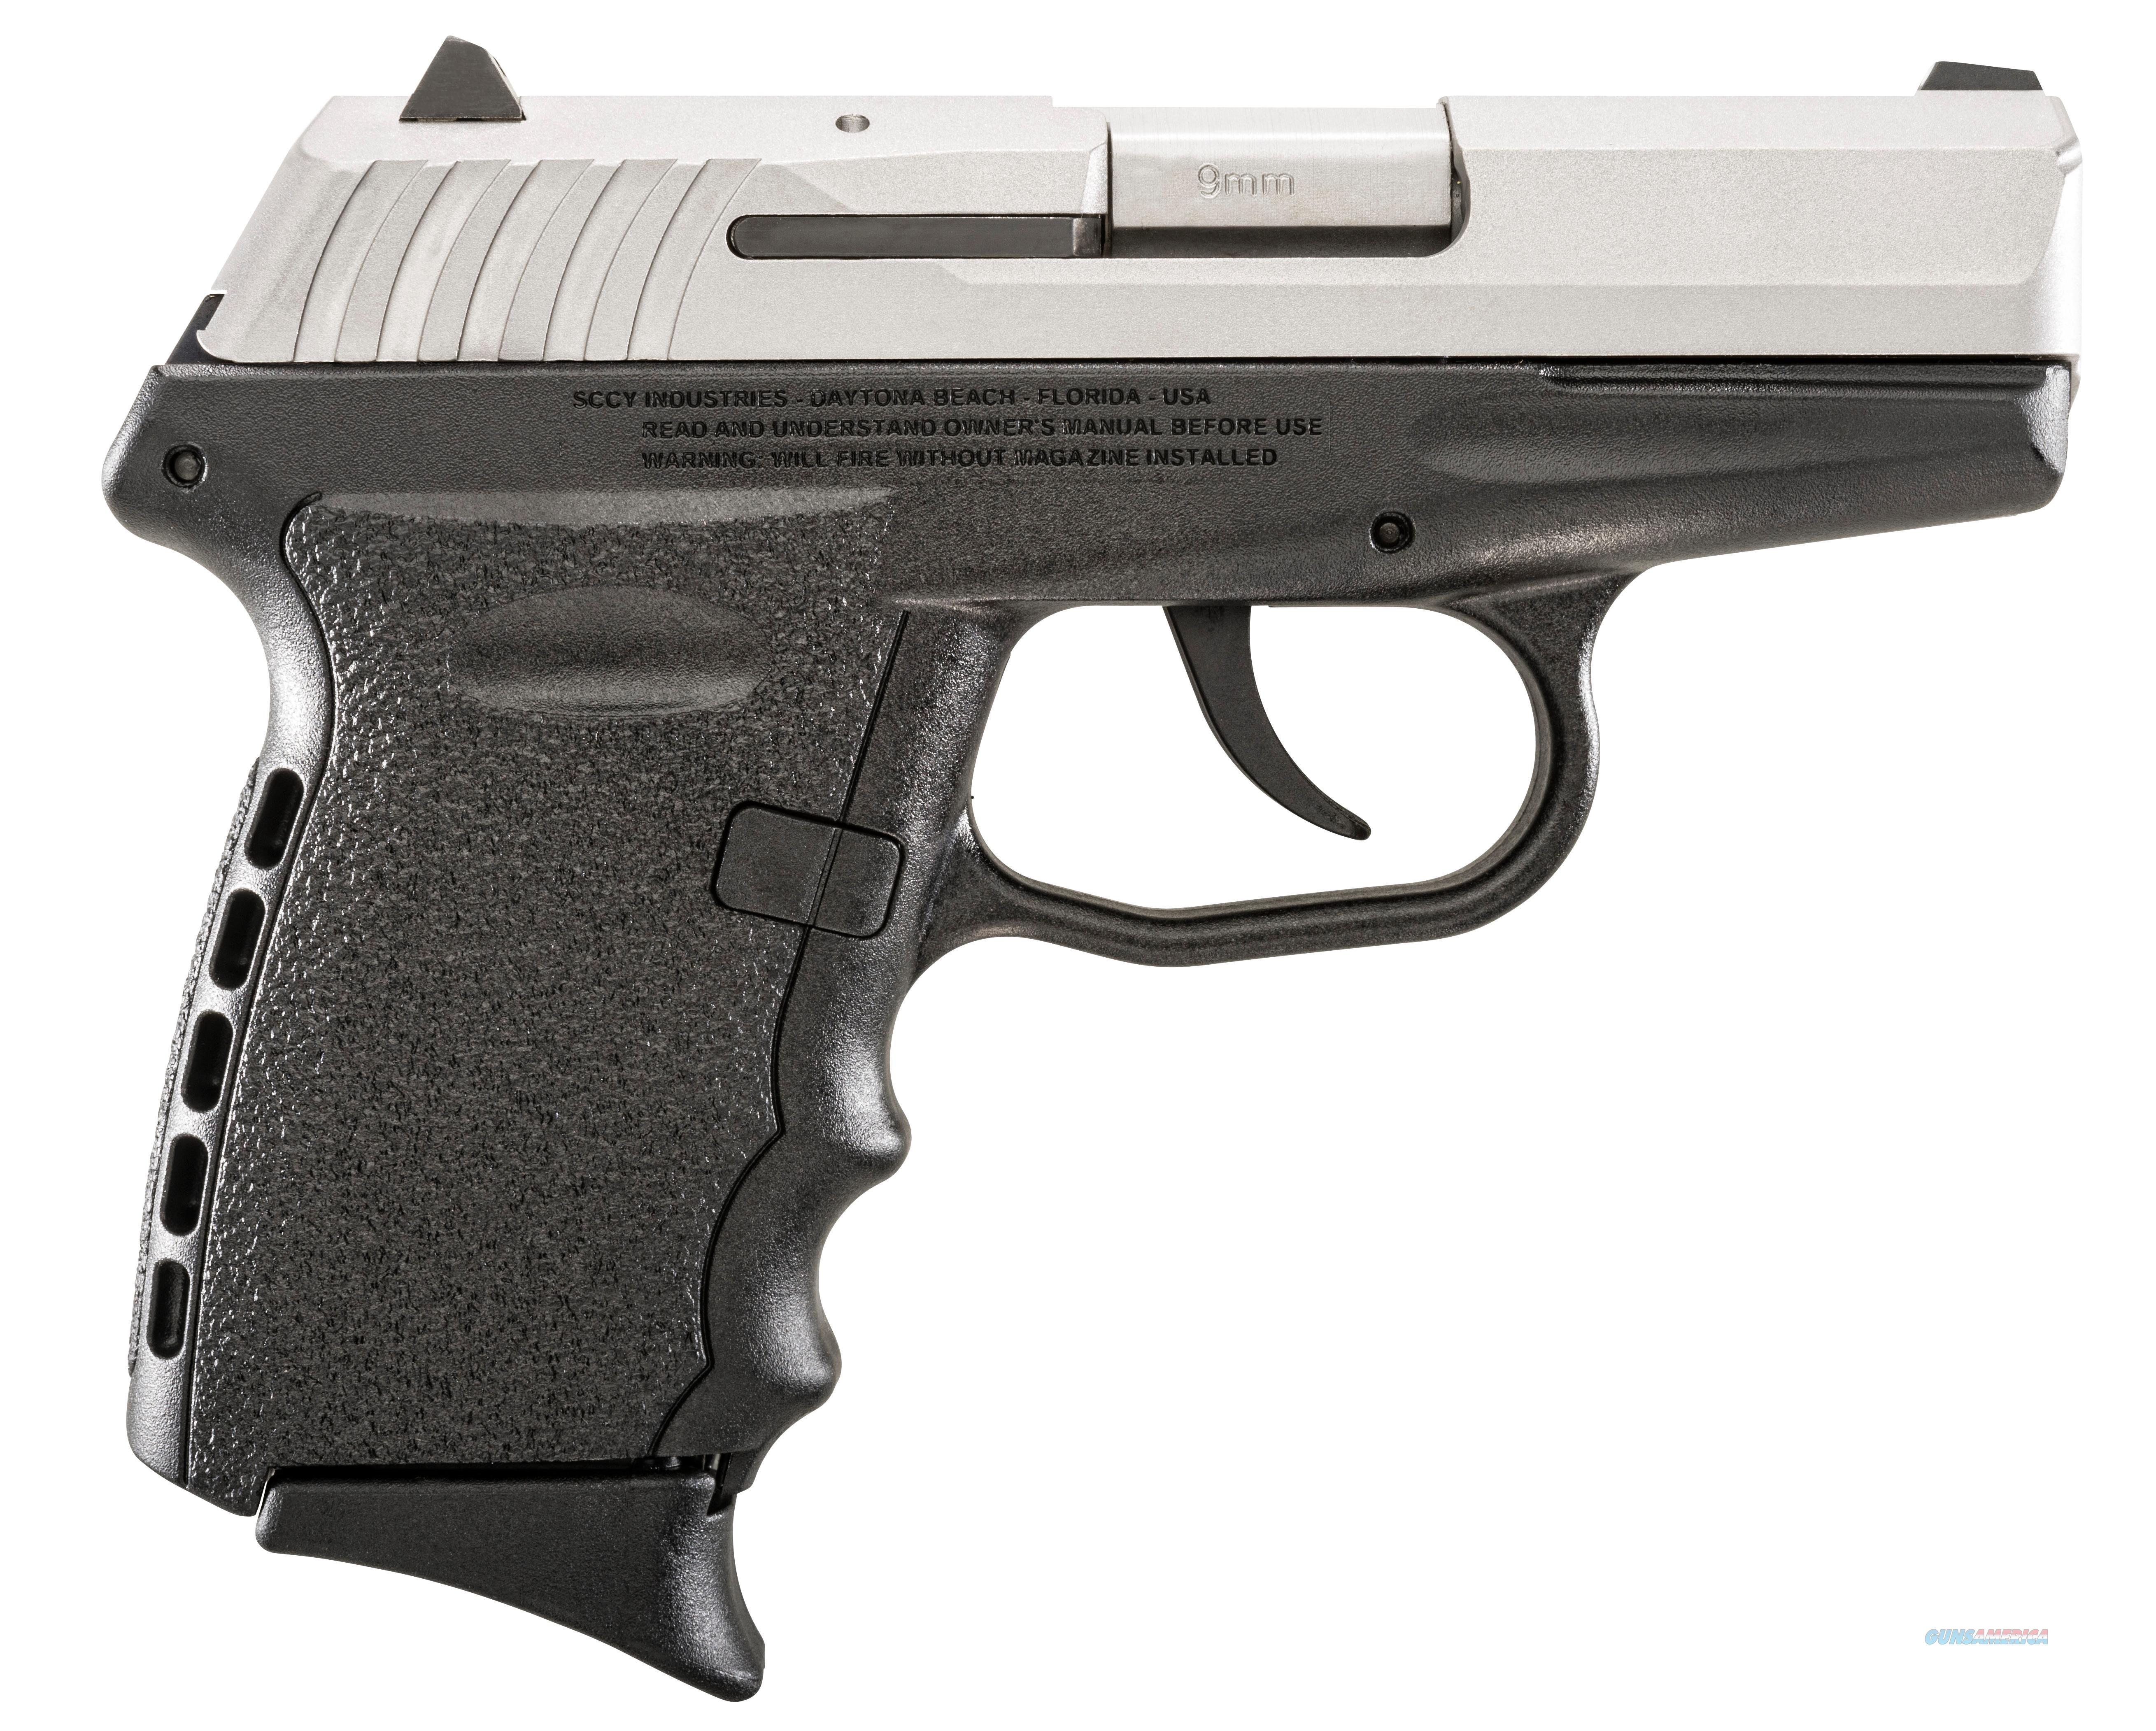 Sccy Industries Cpx-2 9Mm 3.1 10Rd Duo Tone No Safety CPX2-TT  Guns > Pistols > S Misc Pistols